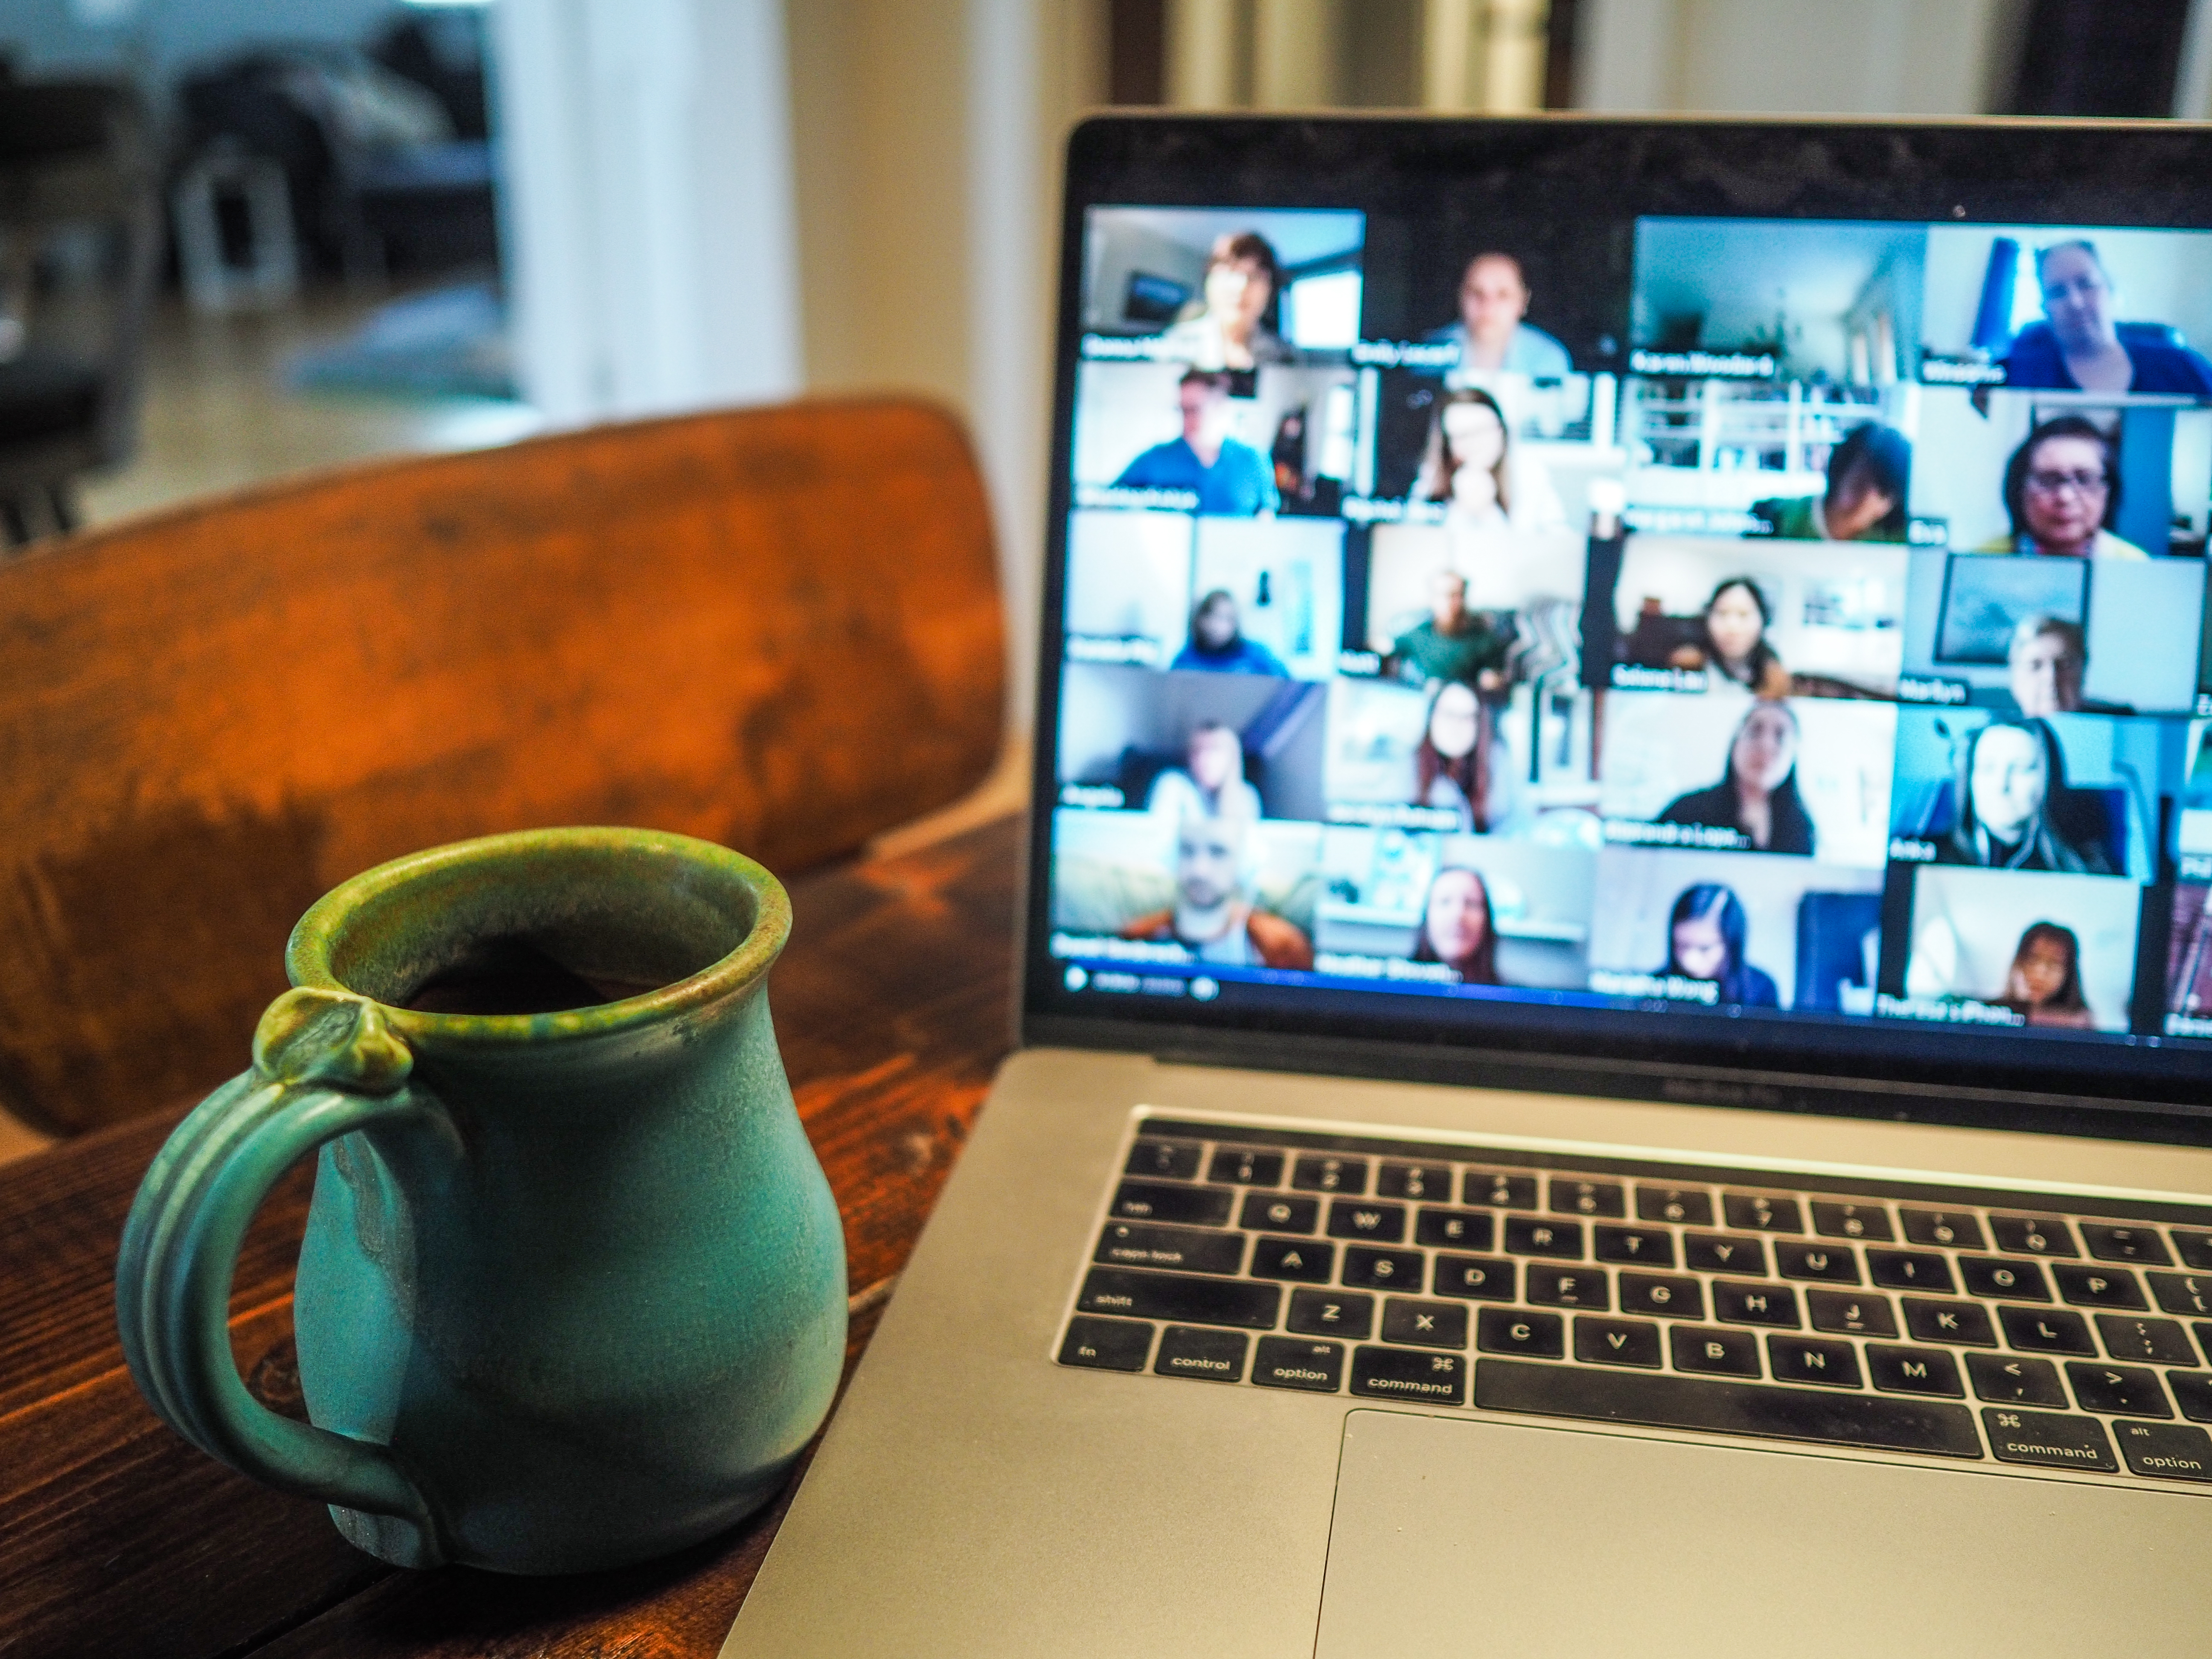 Coffee mug next to a laptop featuring numerous attendees in an online meeting